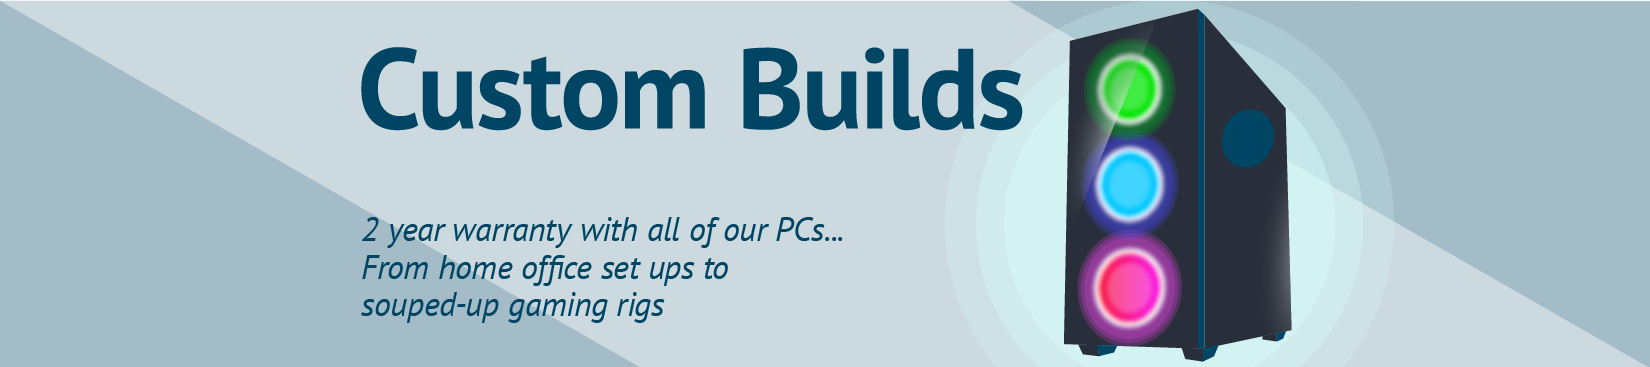 Custombuild-Homepage-banner.png